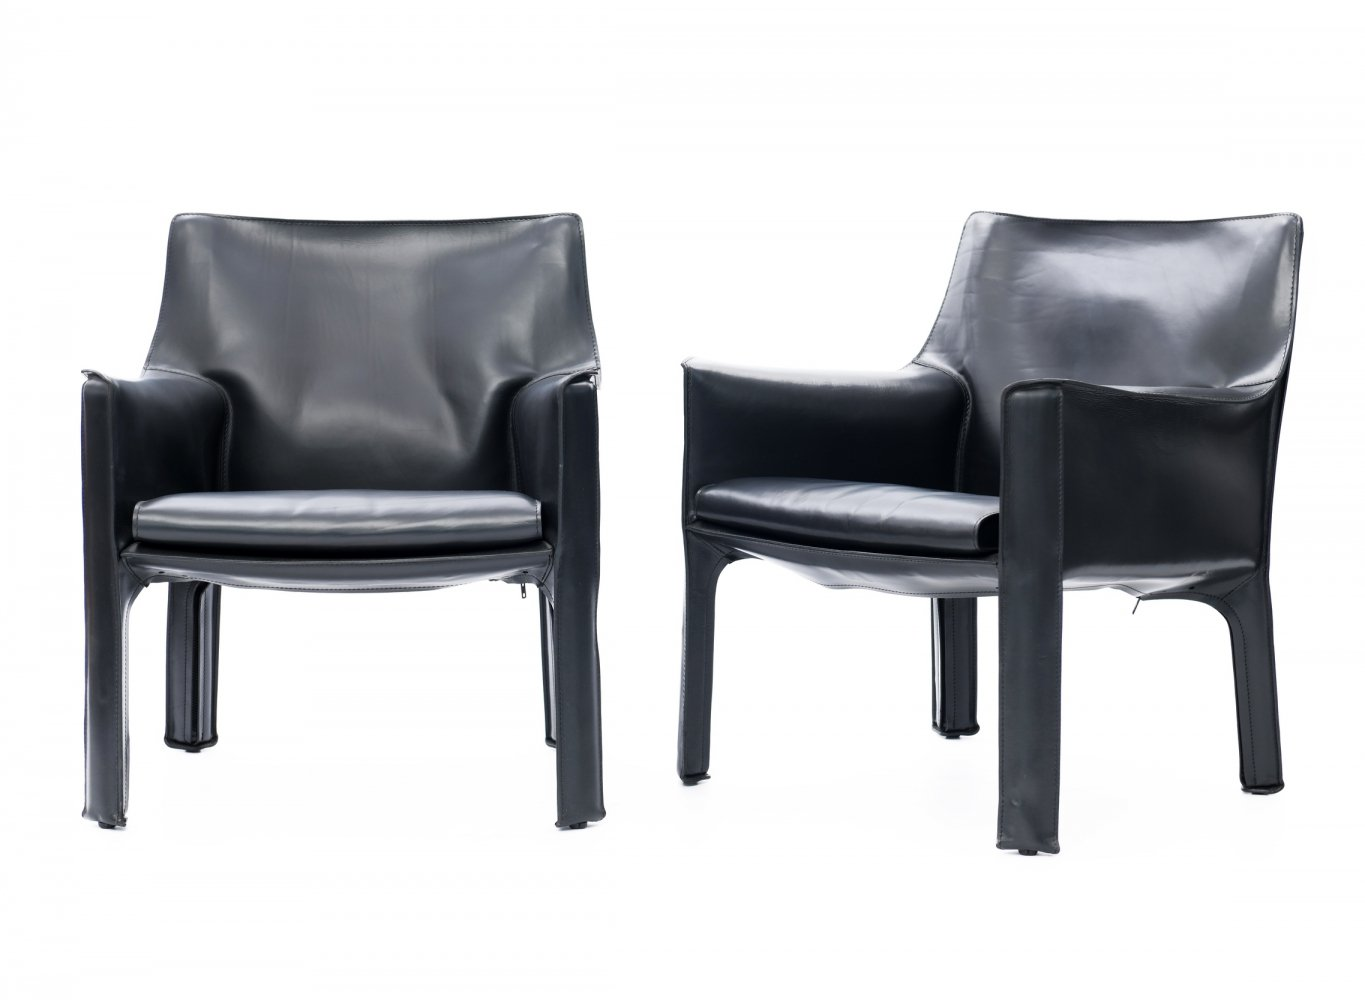 Pair of CAB 414 chairs by Mario Bellini for Cassina, 1980s